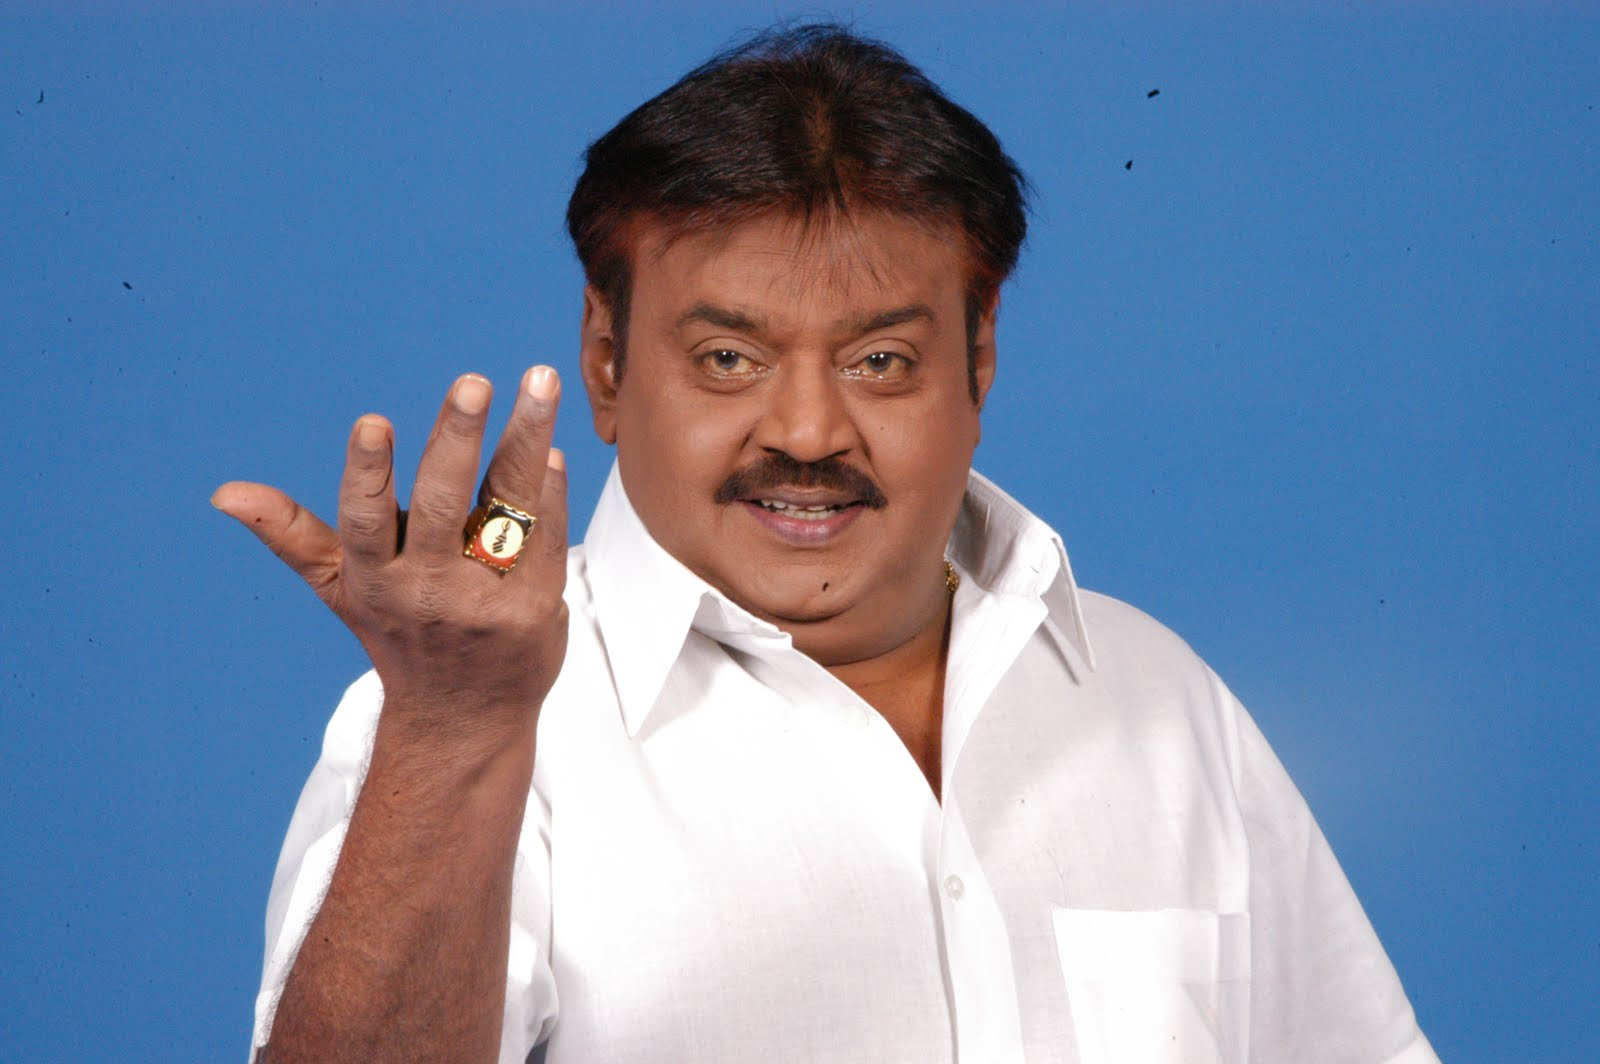 vijayakanth thooki adichiruven audio downloadvijayakanth thooki adichiruven audio, vijayakanth windows media player, vijayakanth actor wiki, vijayakanth comedy speech audio, vijayakanth gif, vijayakanth dialogues, vijayakanth movies, vijayakanth thooki adichiruven audio download, vijayakanth google, vijayakanth thooki adichiruven, vijayakanth thooki adichuruven, vijayakanth comedy speech download, vijayakanth interview, vijayakanth wife photos, vijayakanth hits, vijayakanth funny videos, vijayakanth speech, vijayakanth yoga, vijayakanth movie list, vijayakanth memes